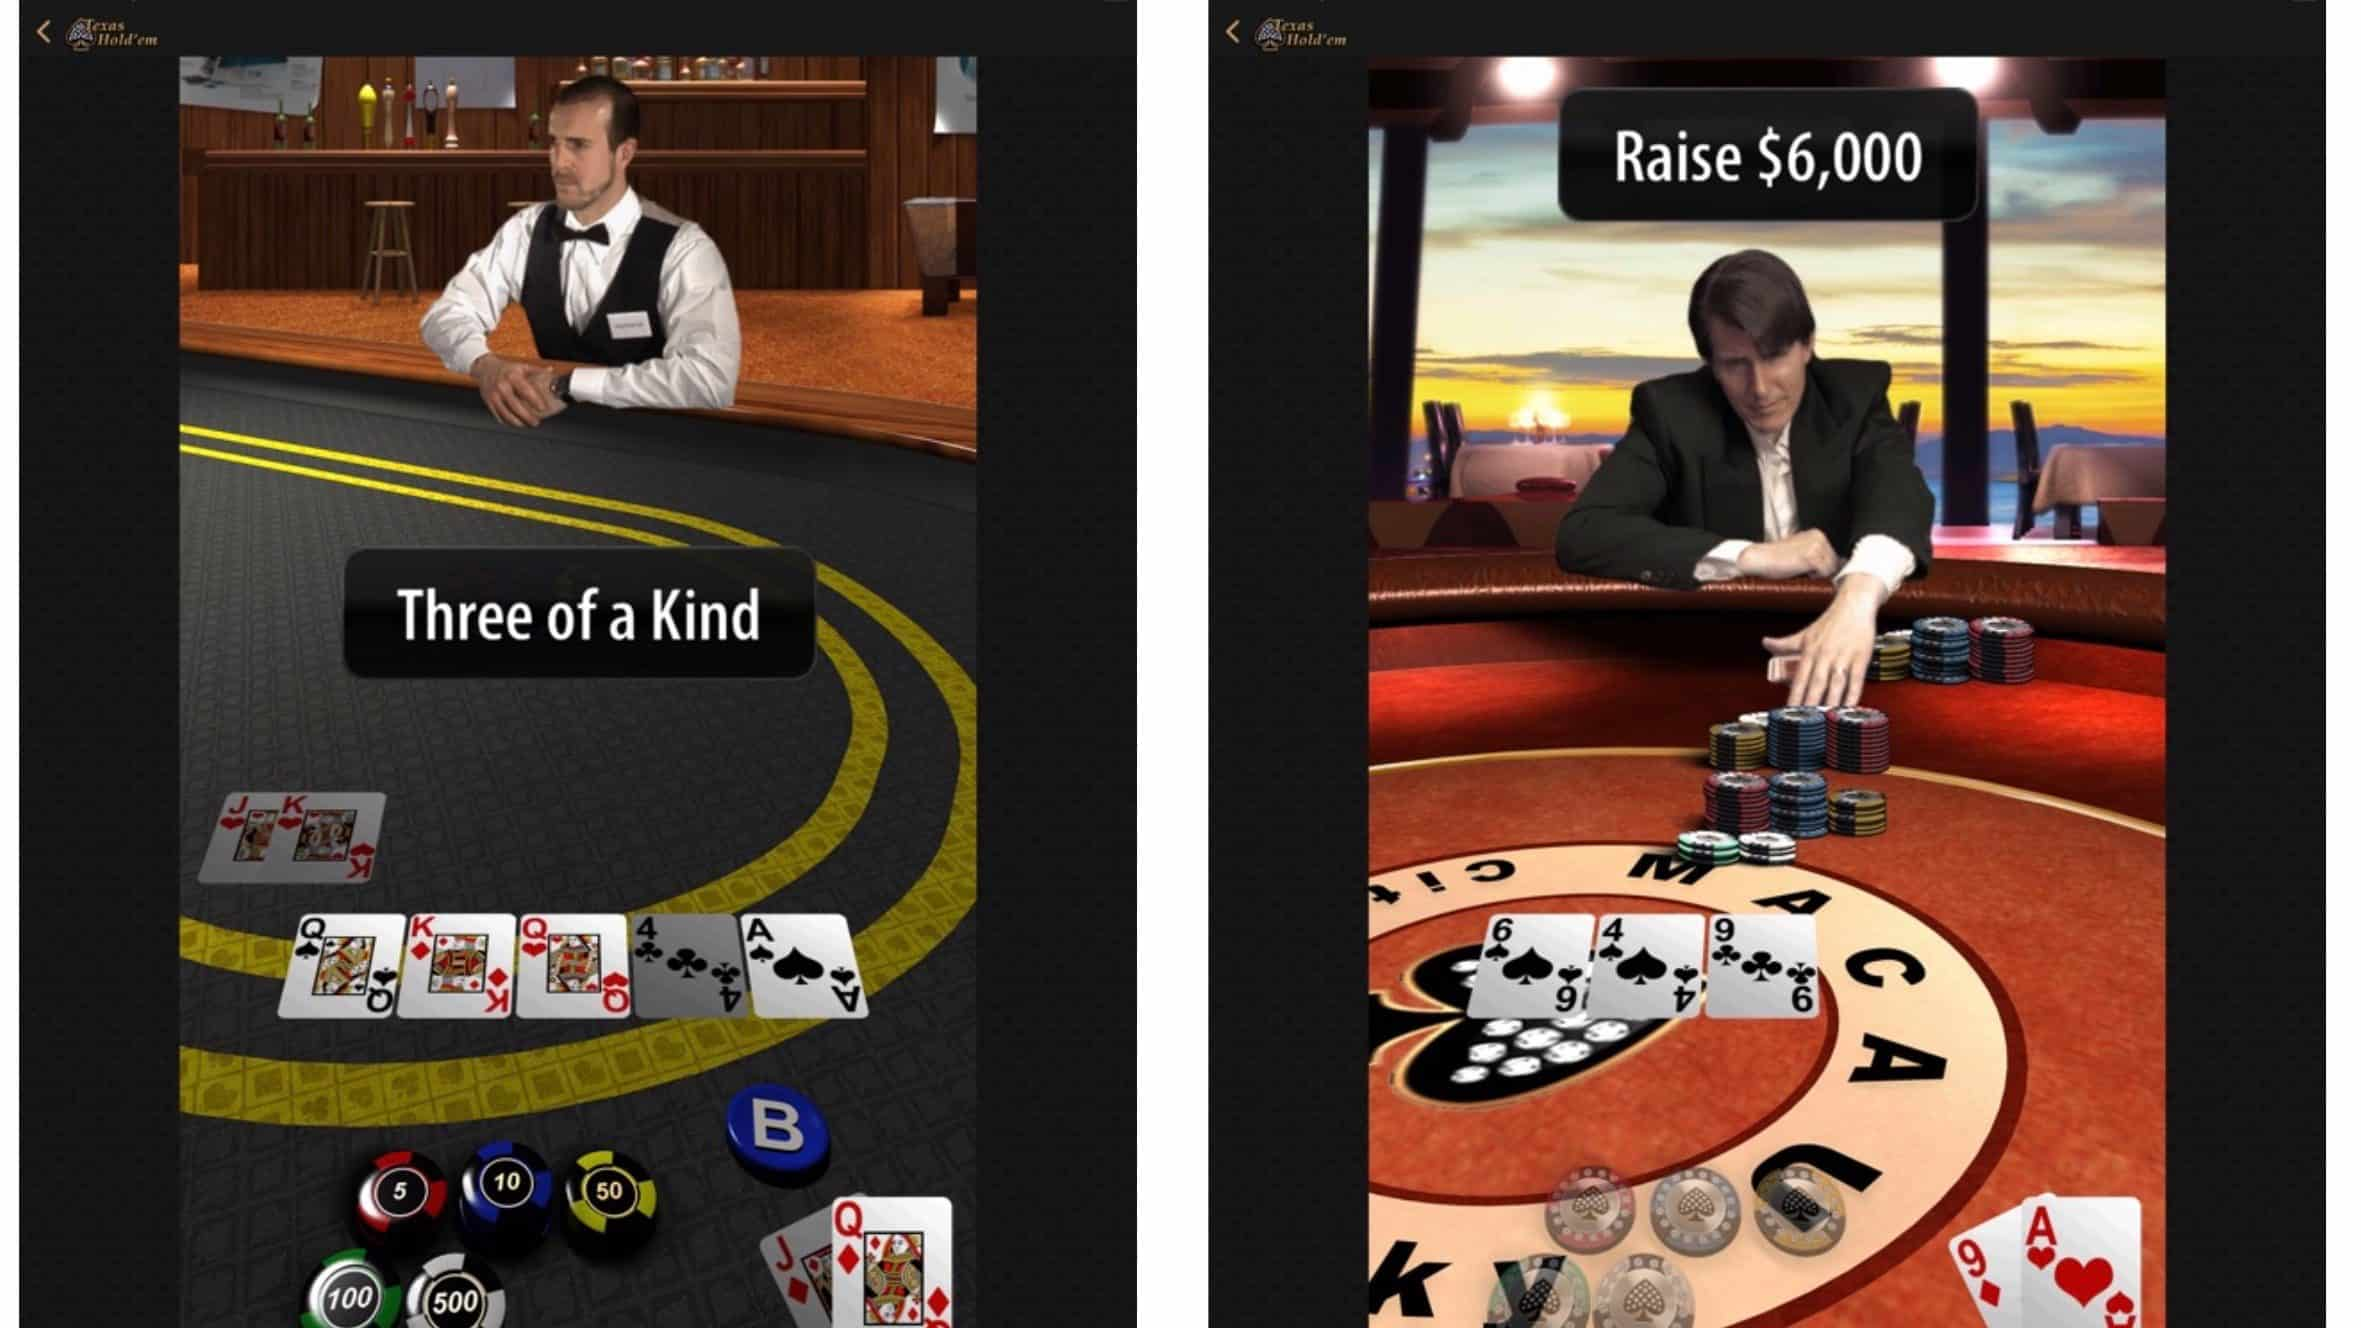 Apple Texas Hold'em Updated with iPad Support and Multi-Tasking